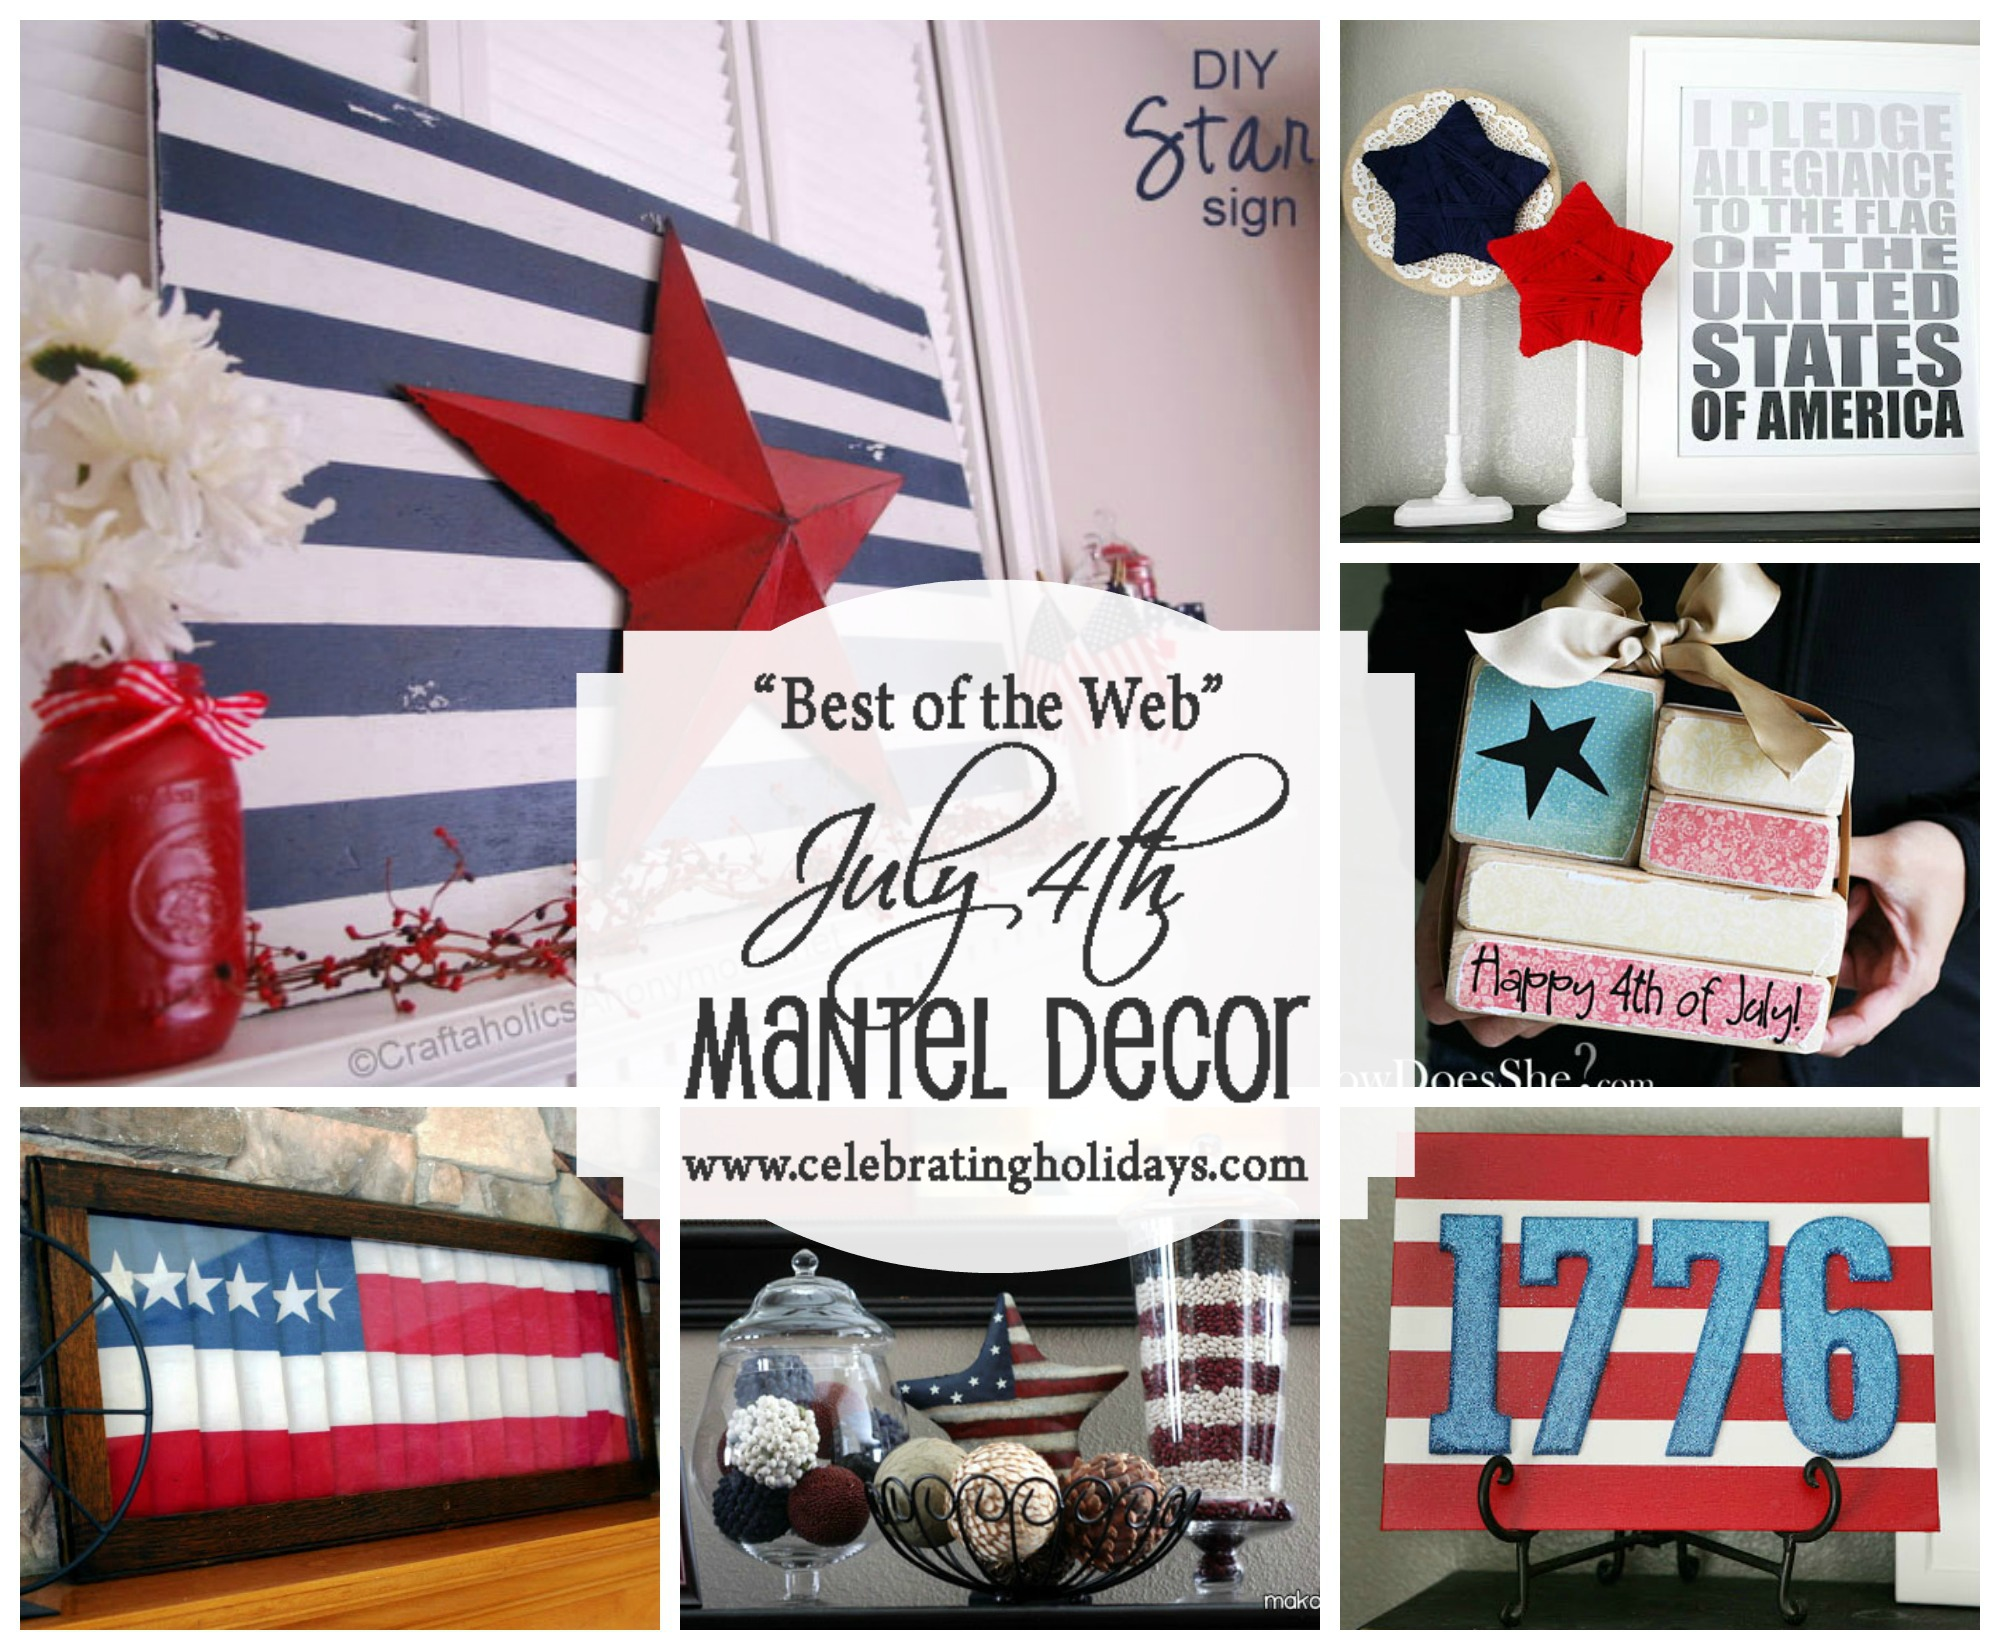 Mantel DIY Decorating for July 4th